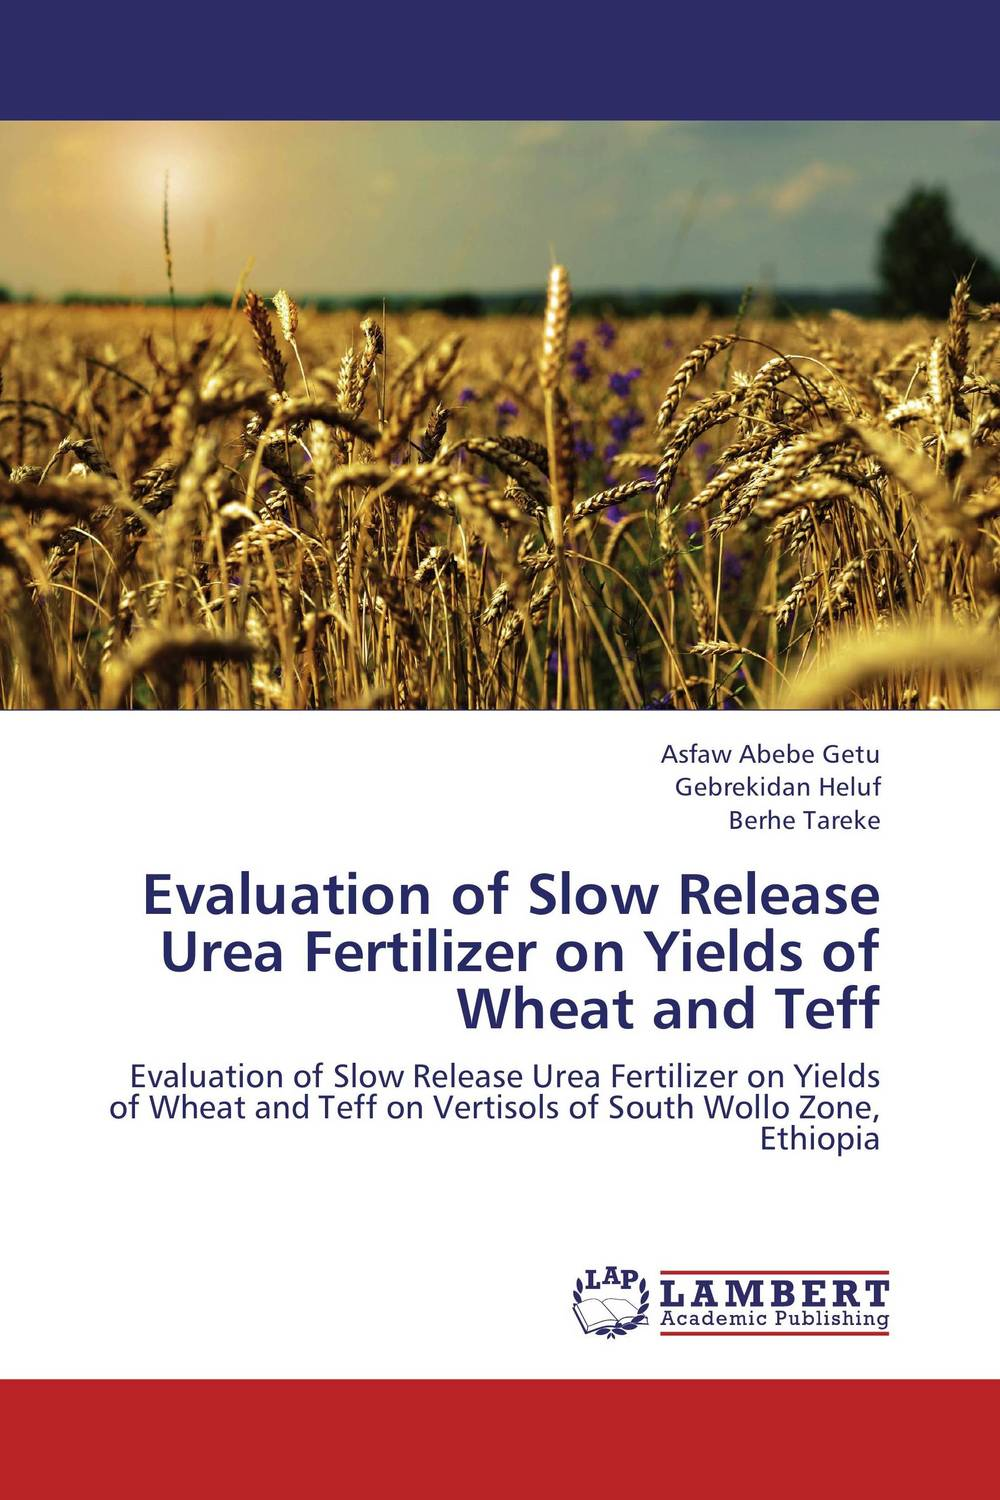 Evaluation of Slow Release Urea Fertilizer on Yields of Wheat and Teff manzoni treviso